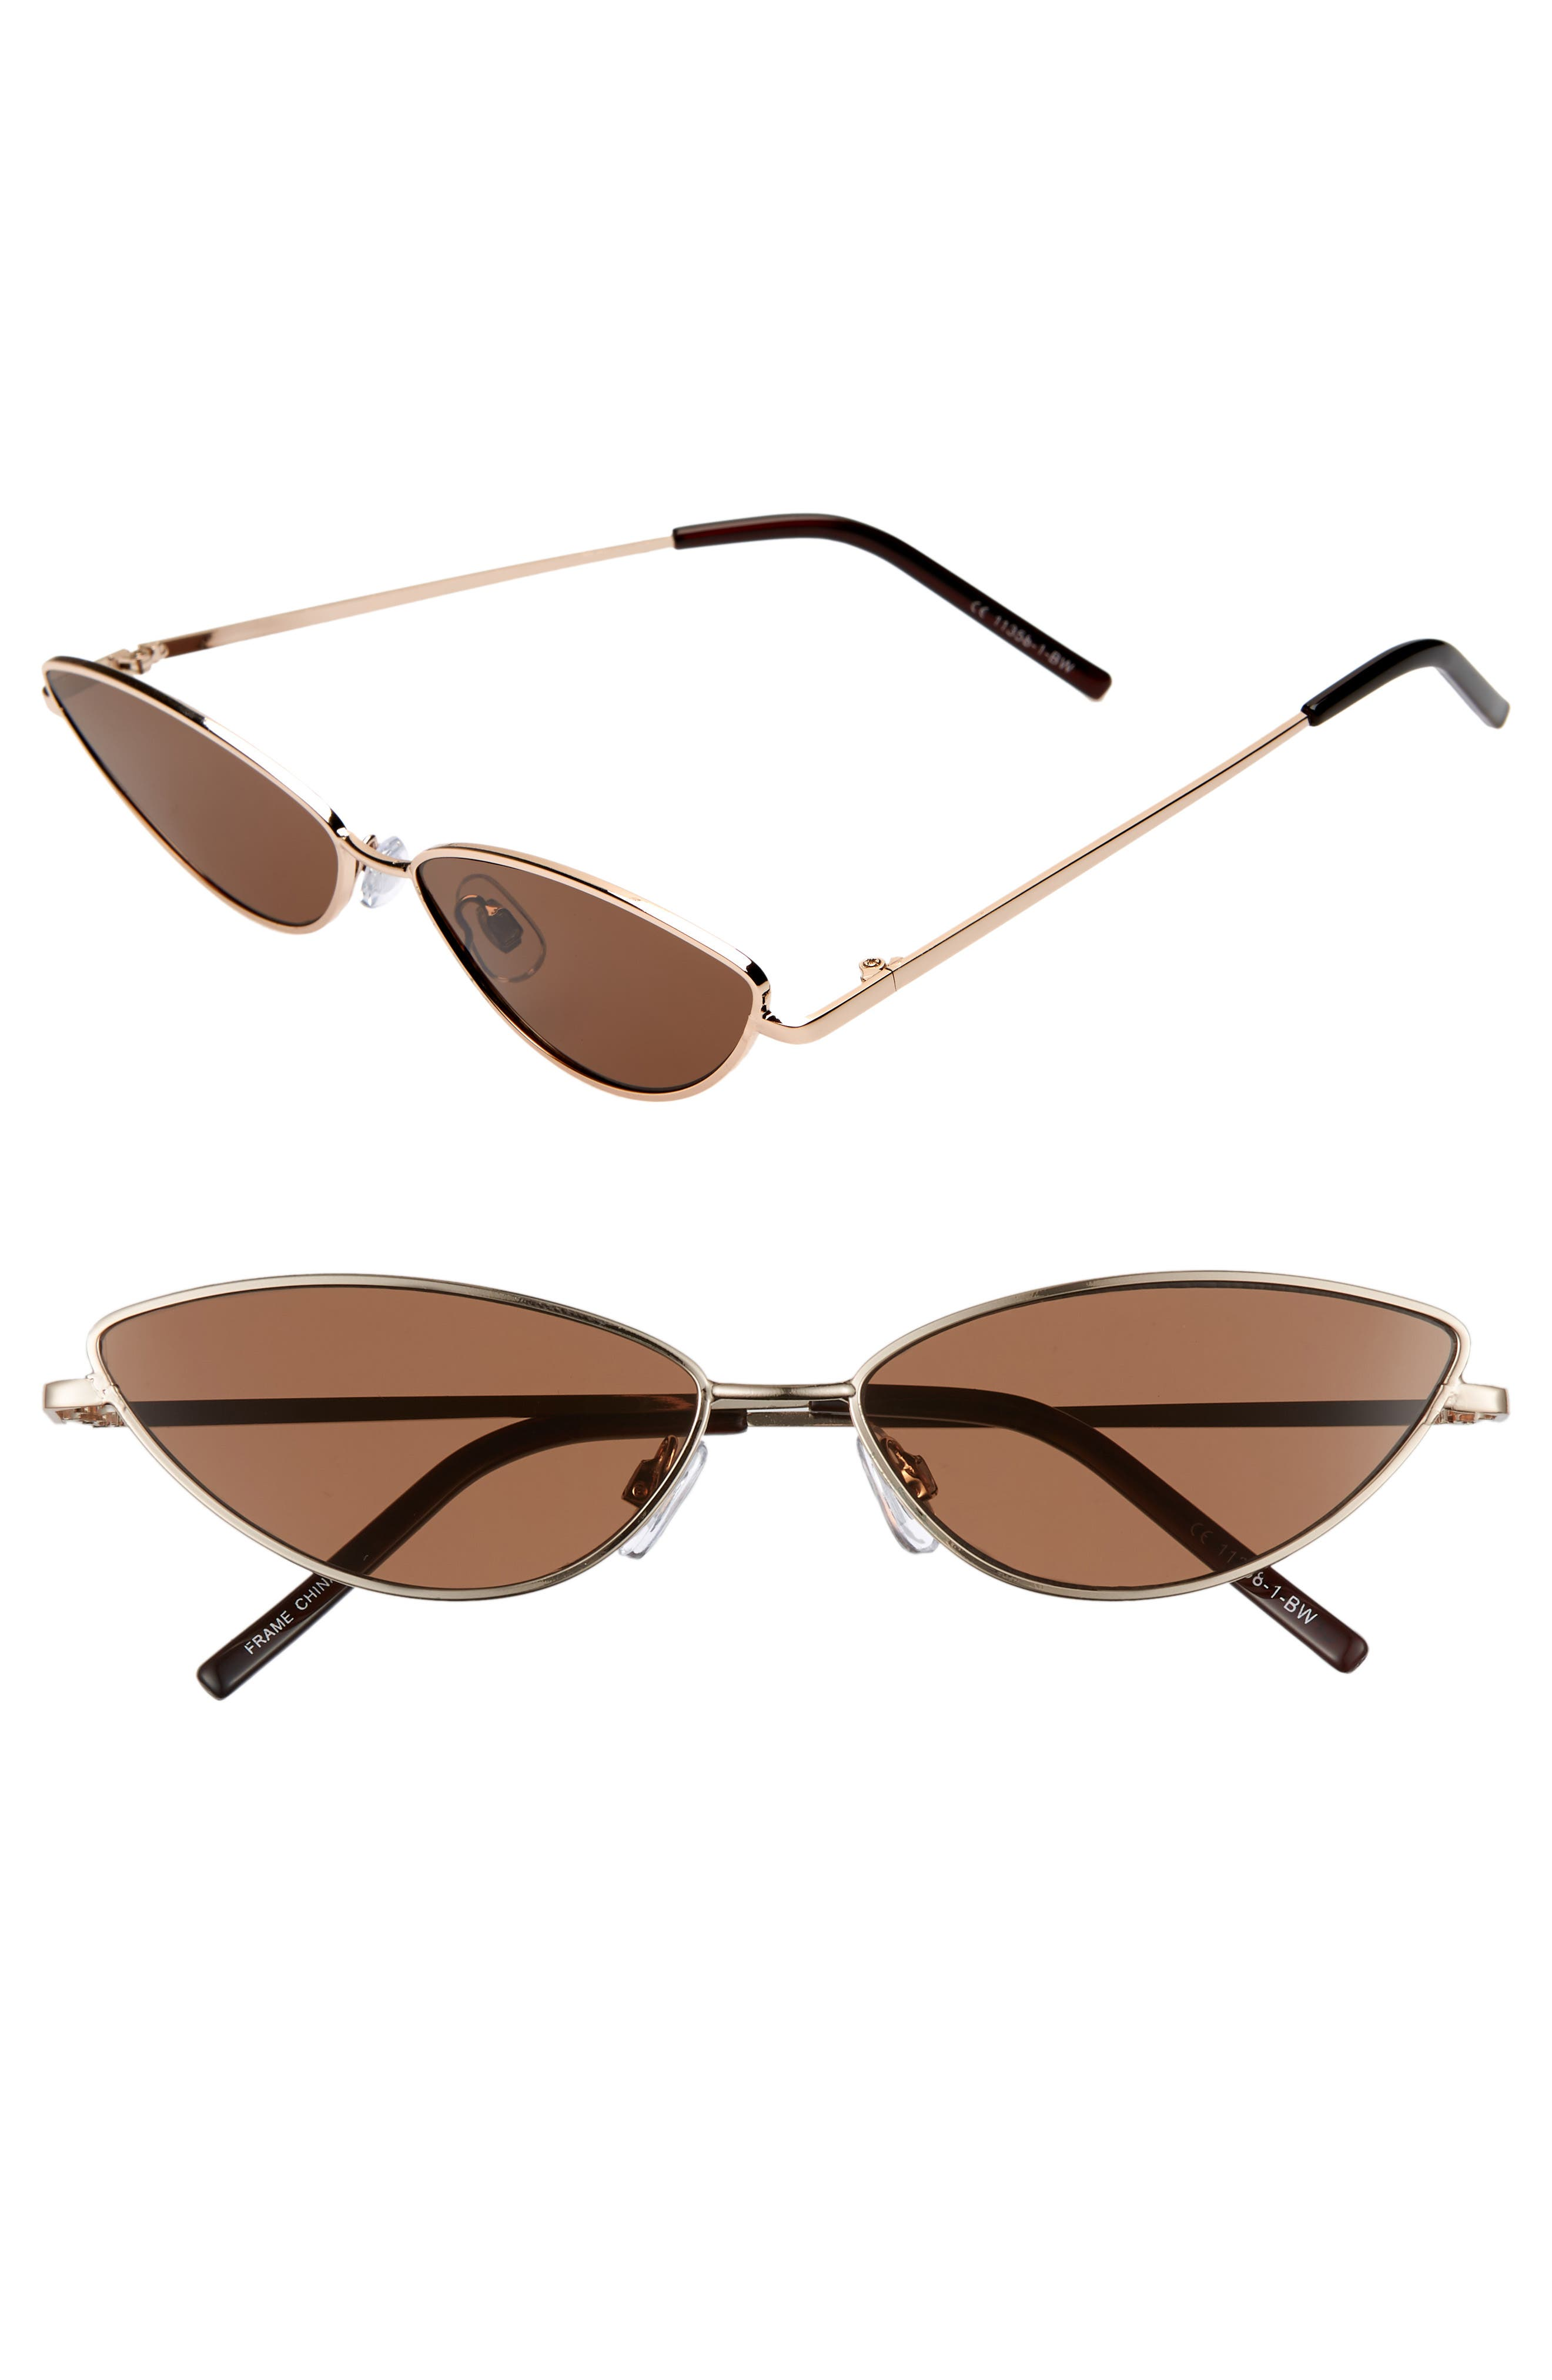 57mm Wide Cat Eye Sunglasses,                         Main,                         color, GOLD/ BROWN